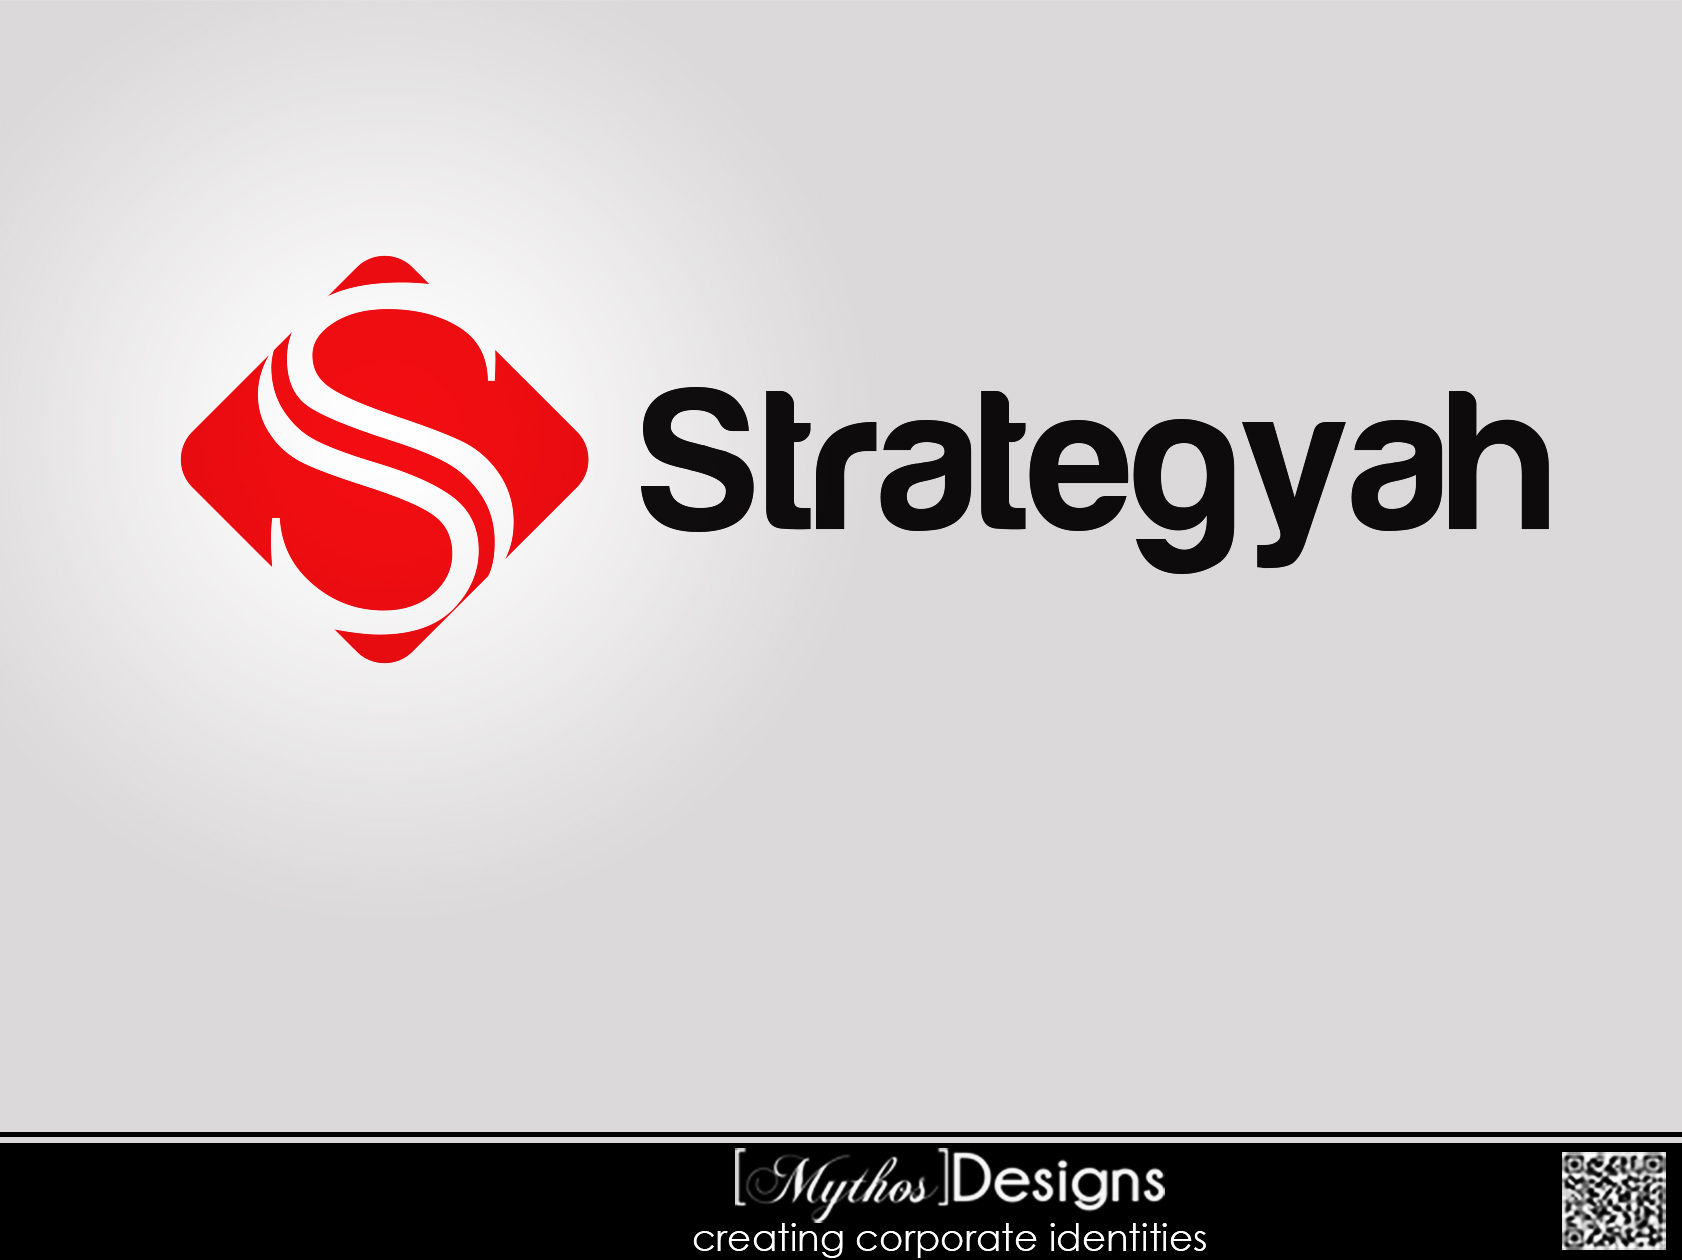 Logo Design by Mythos Designs - Entry No. 398 in the Logo Design Contest Creative Logo Design for Strategyah.